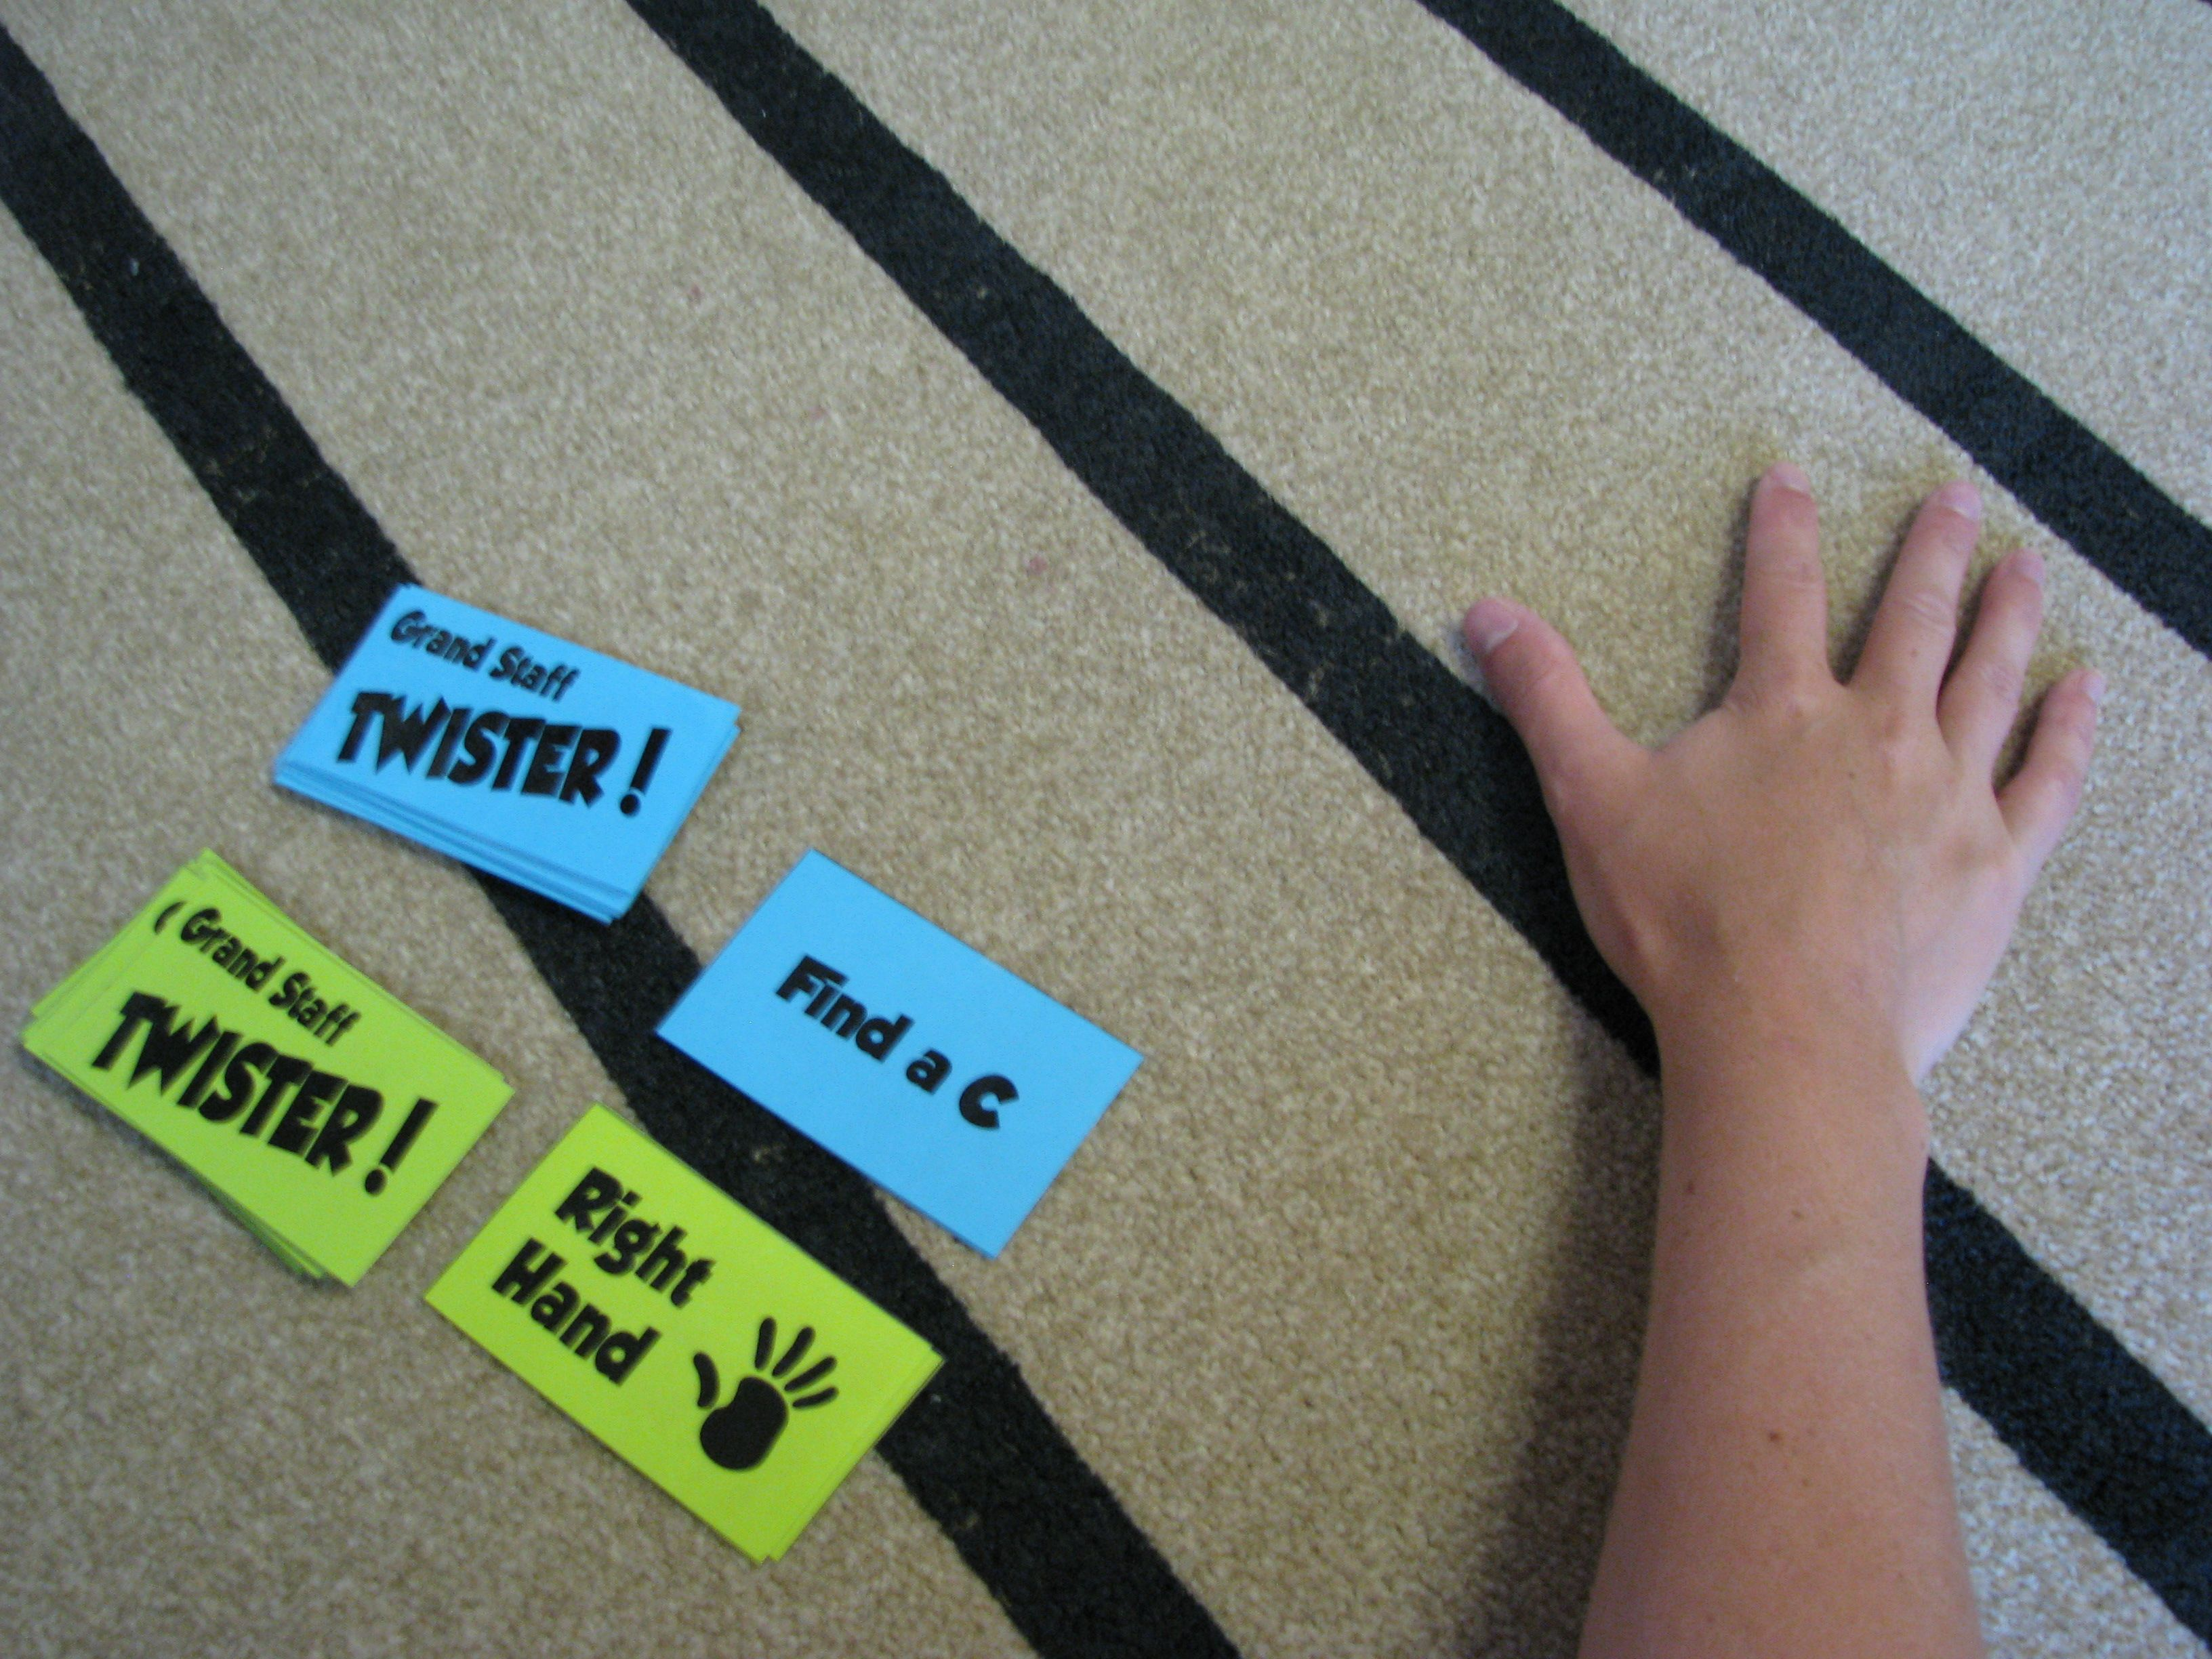 Grand Staff Twister Game Idea If We Have Extra Time In Let S Play Music Classes My Students